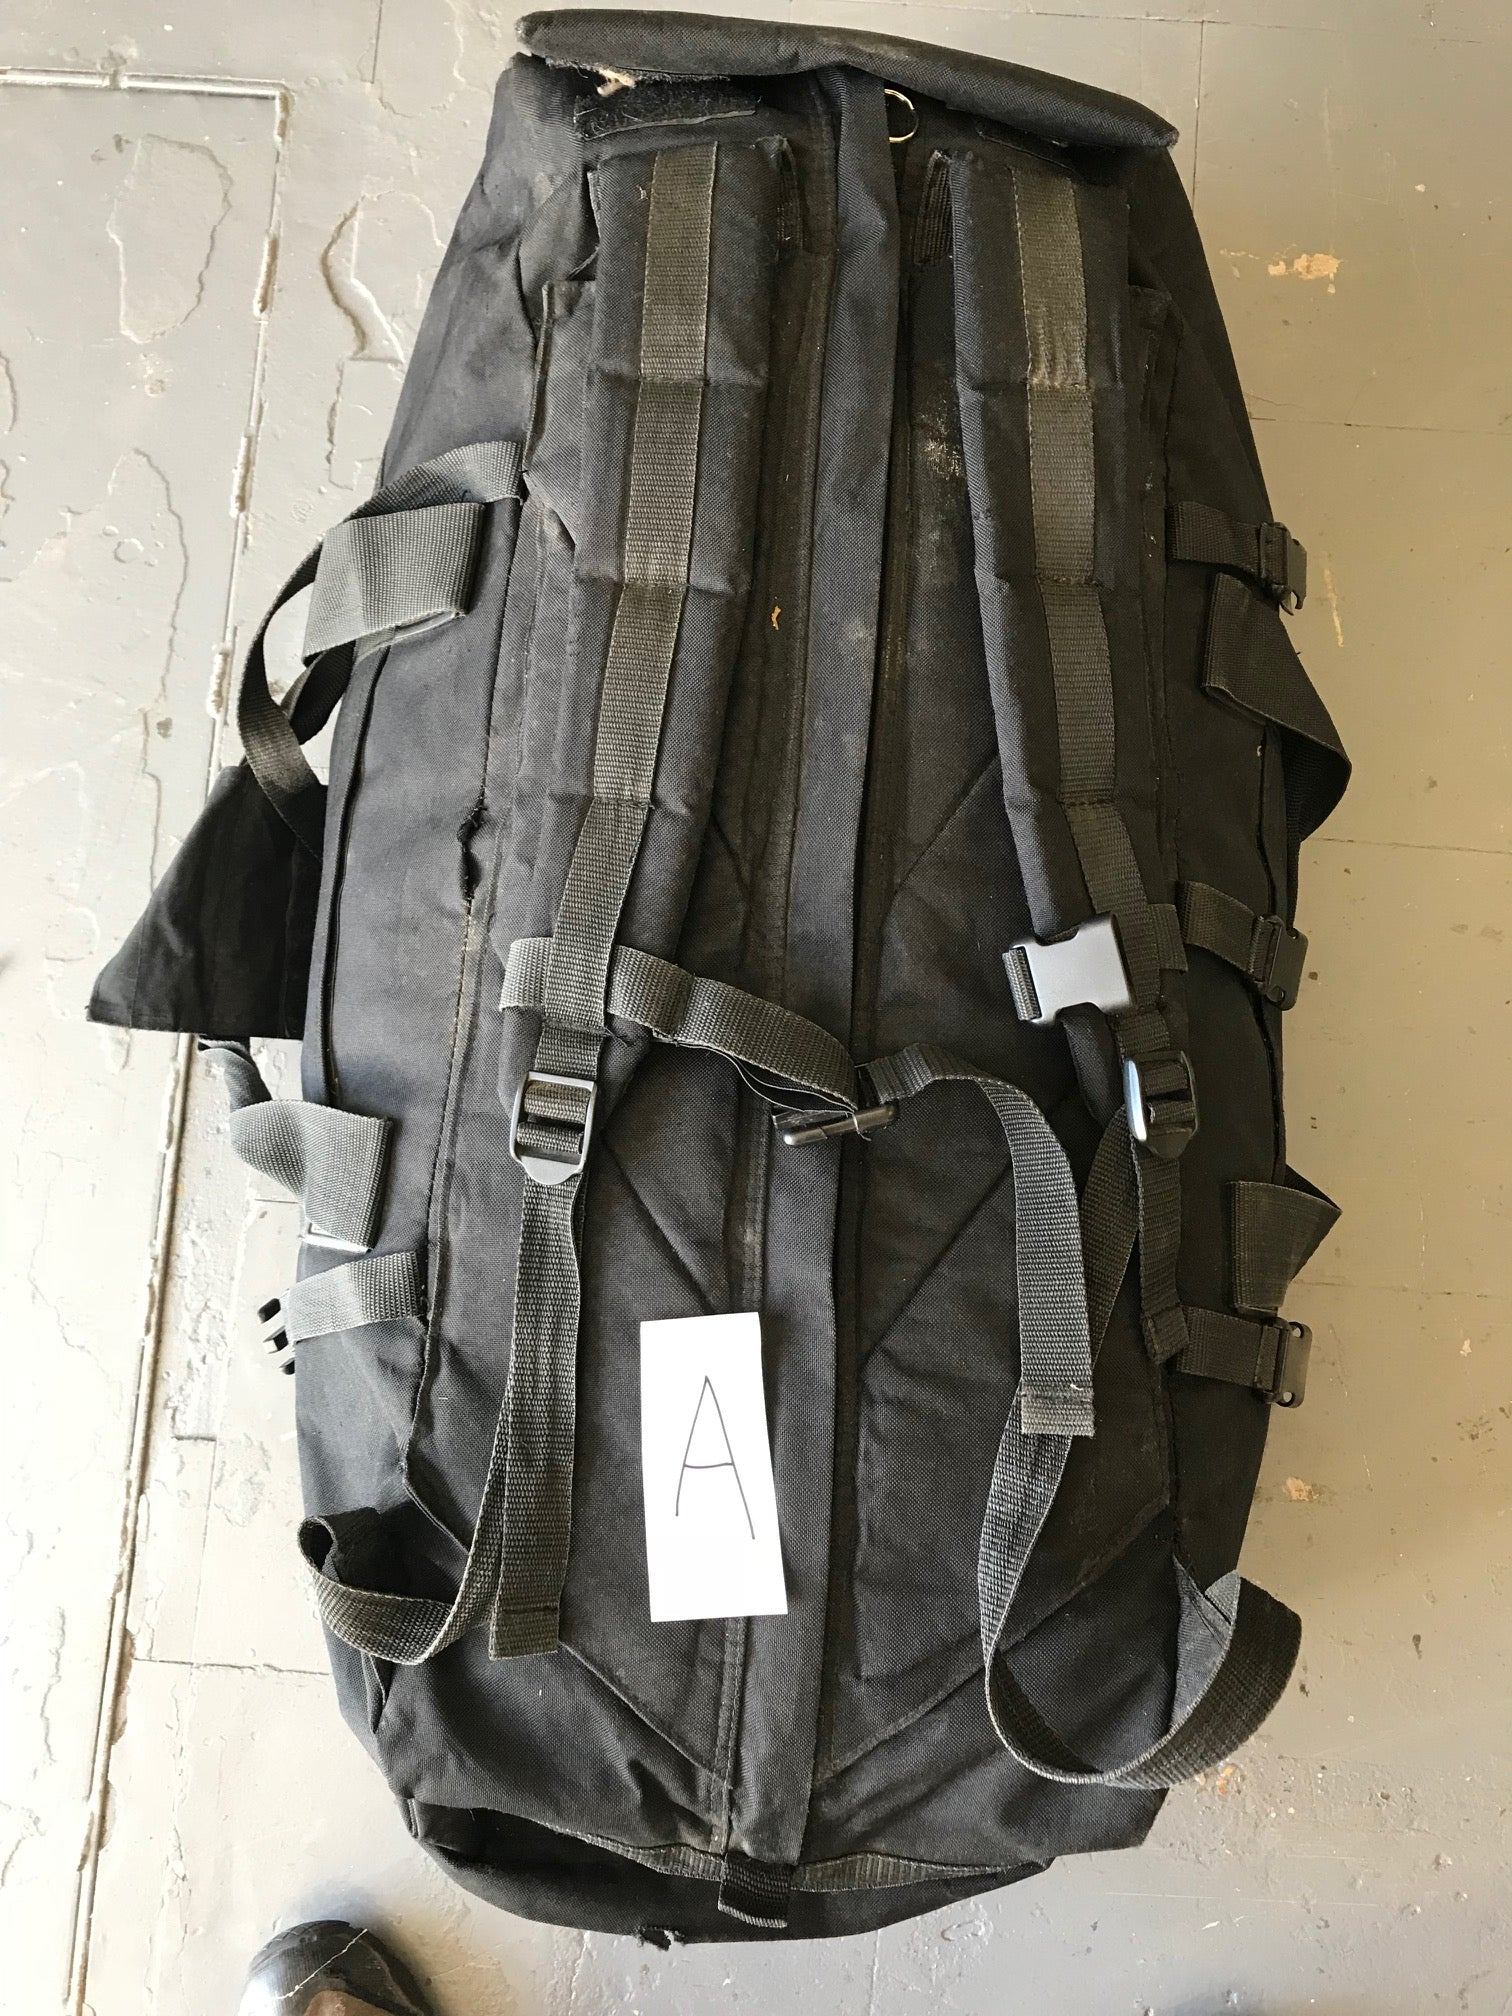 British armysurplus black deployment bag, G2, 100 litres